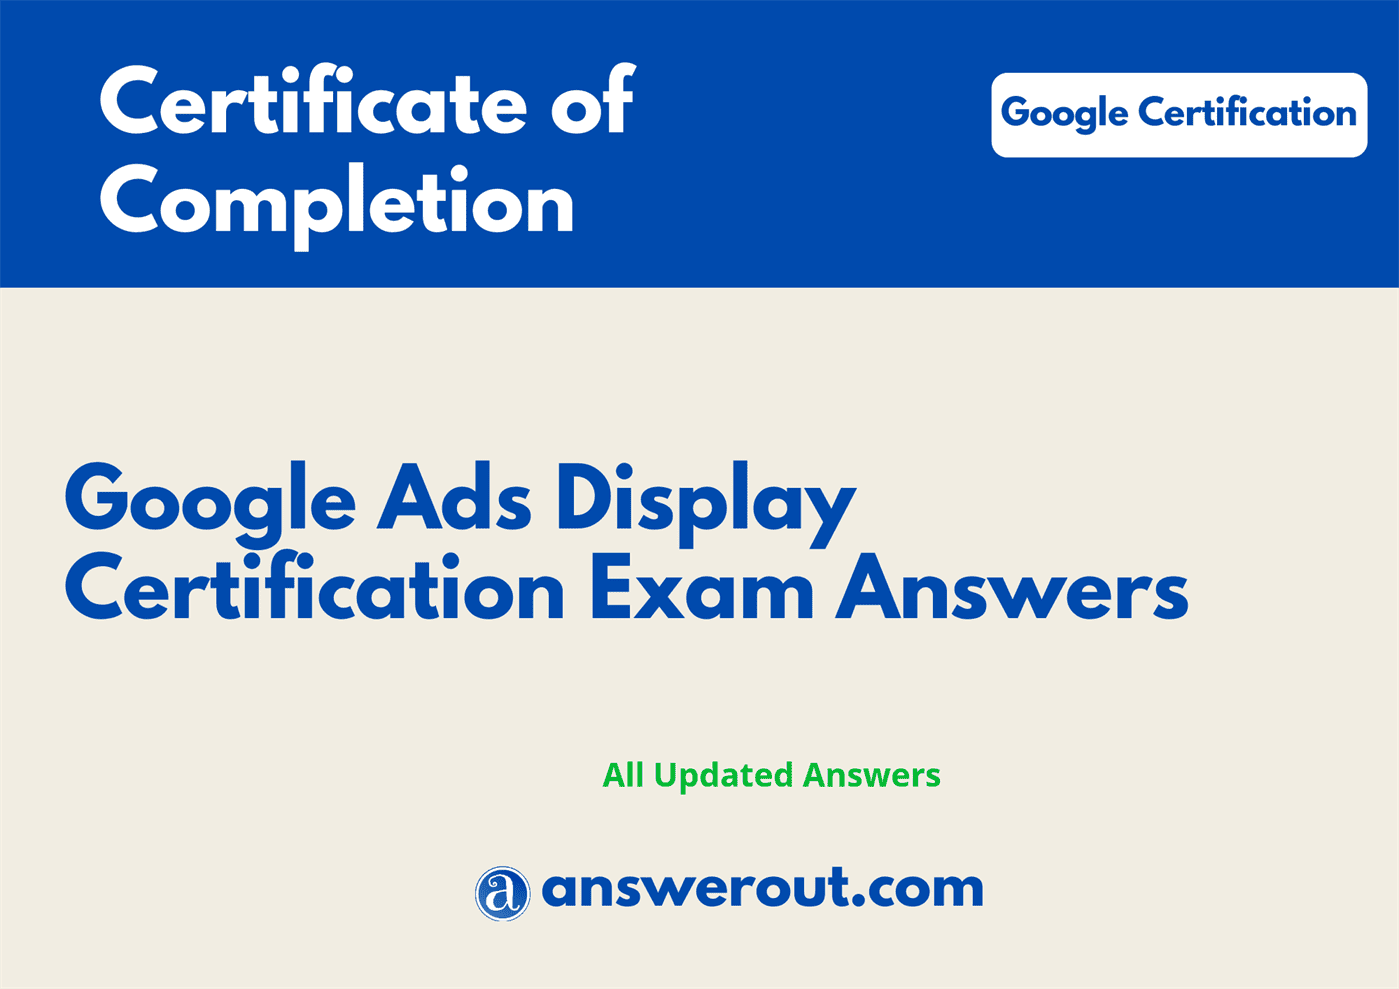 Google Ads Display Certification Exam Answers 2021